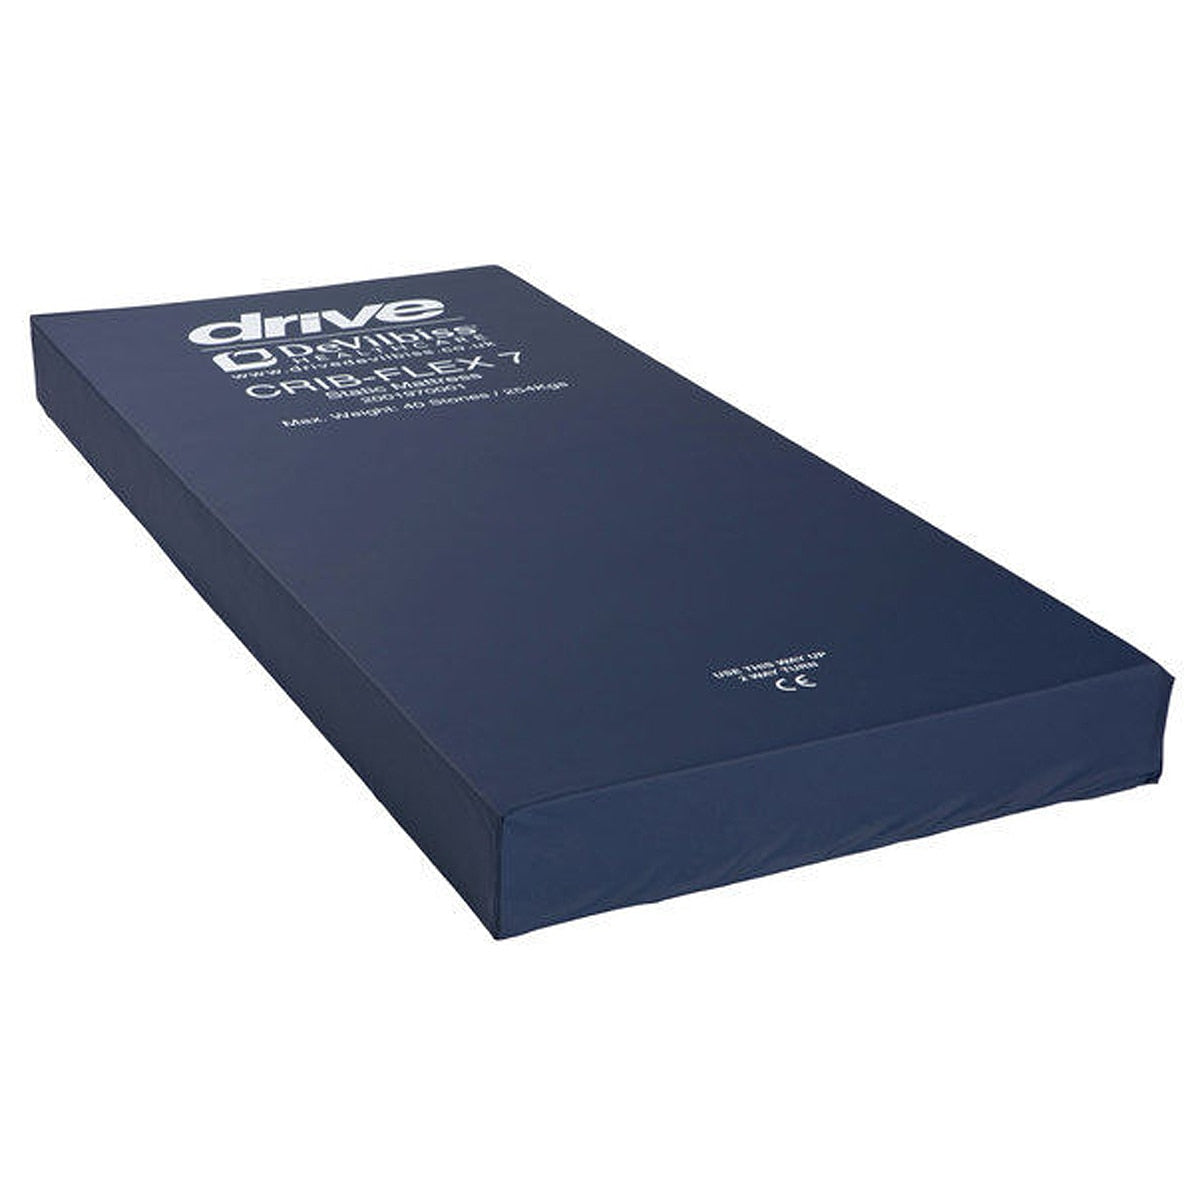 Crib-Flex 7 Mattress